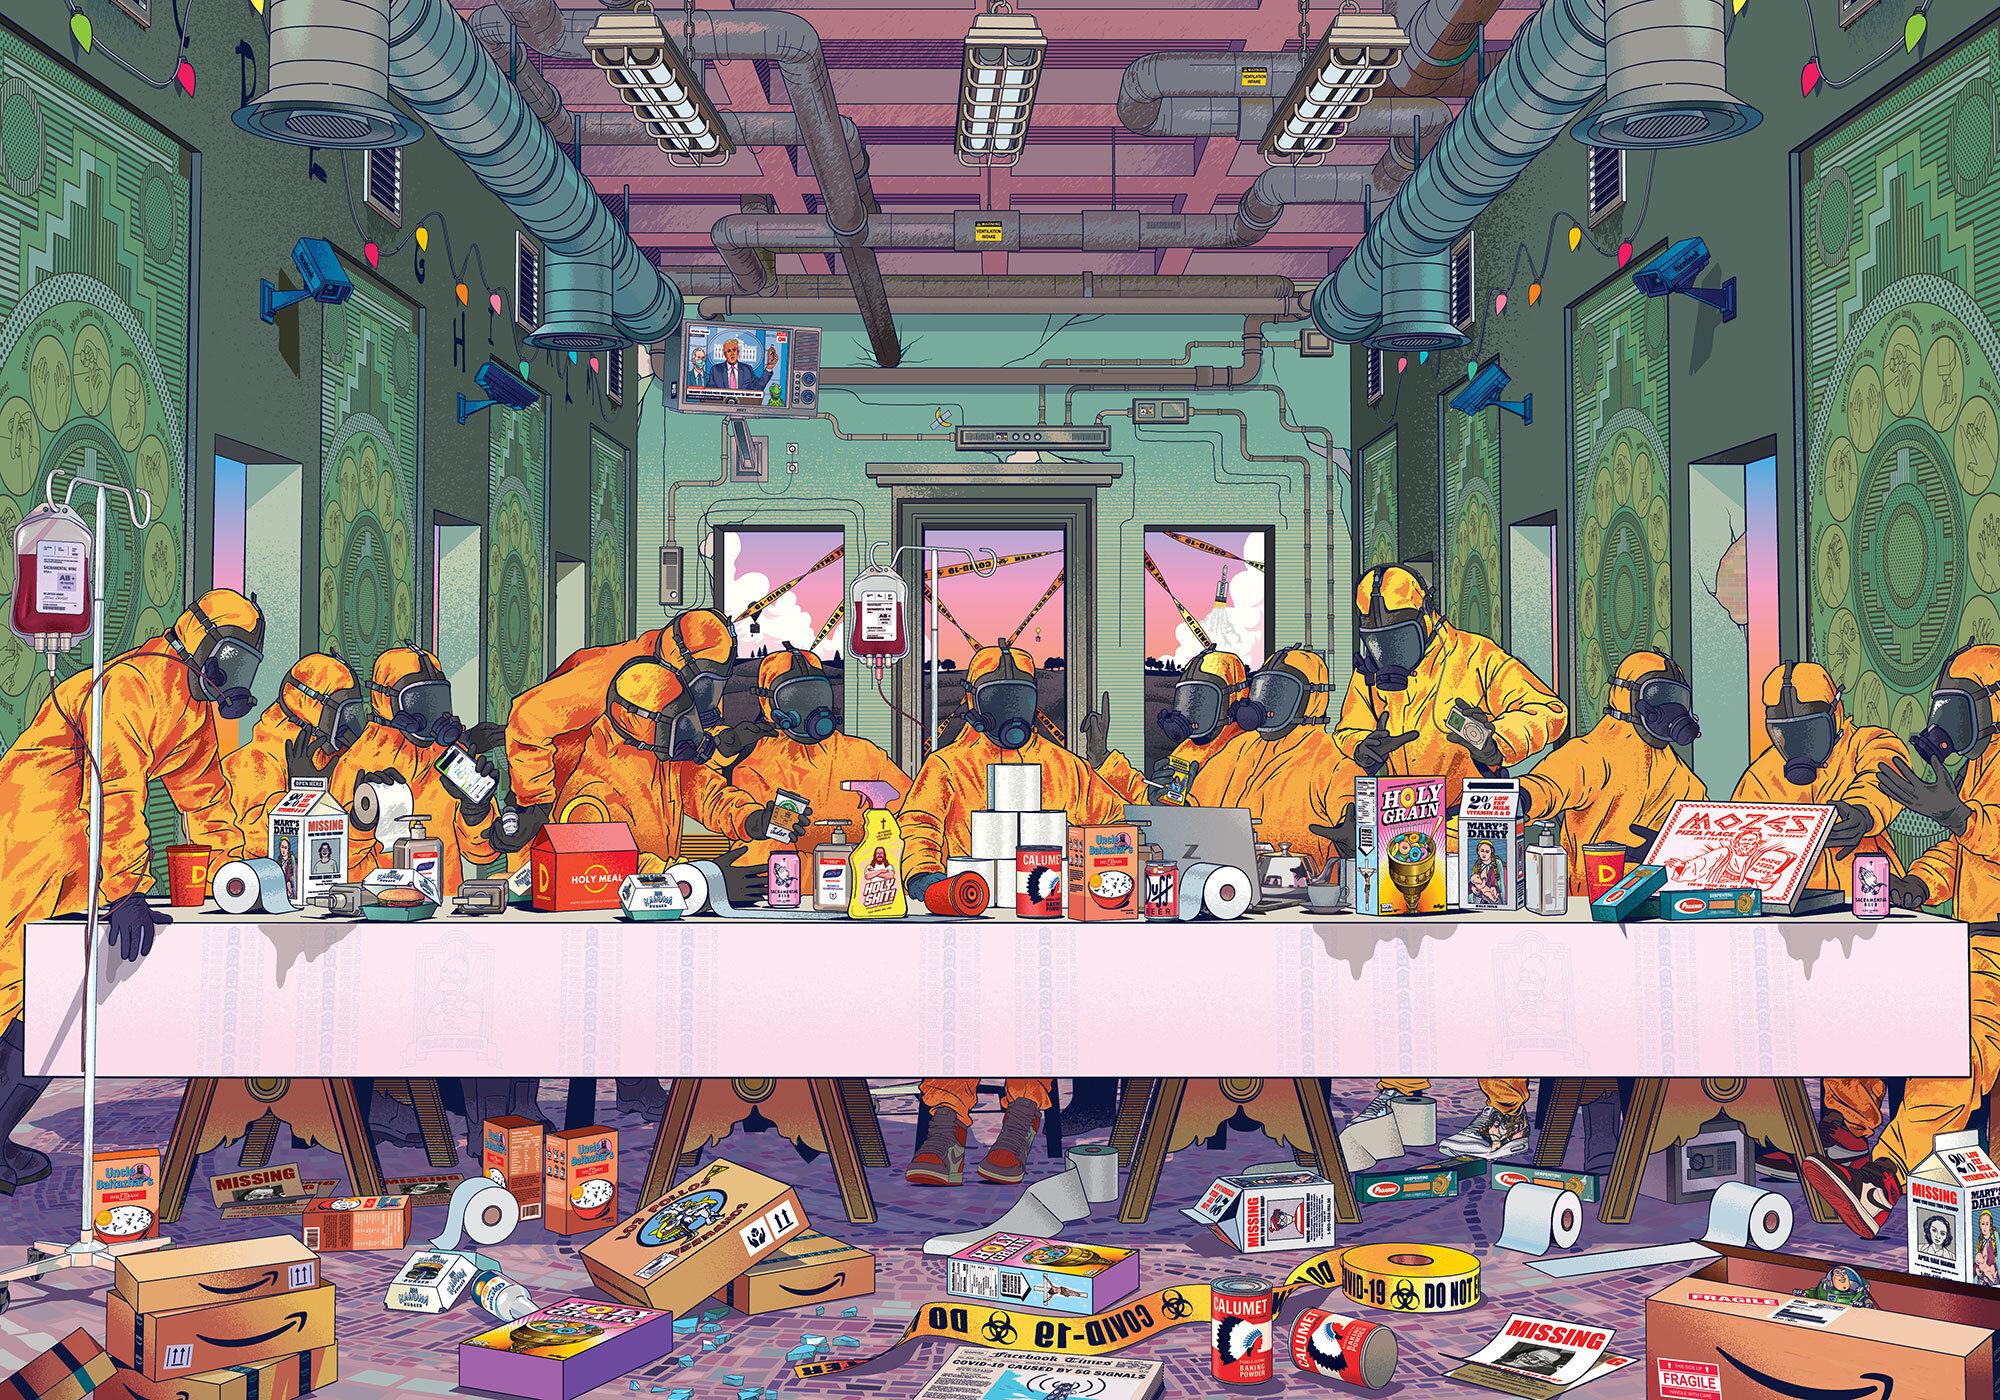 Indesign-Last-Supper-OK-Small.jpg?format